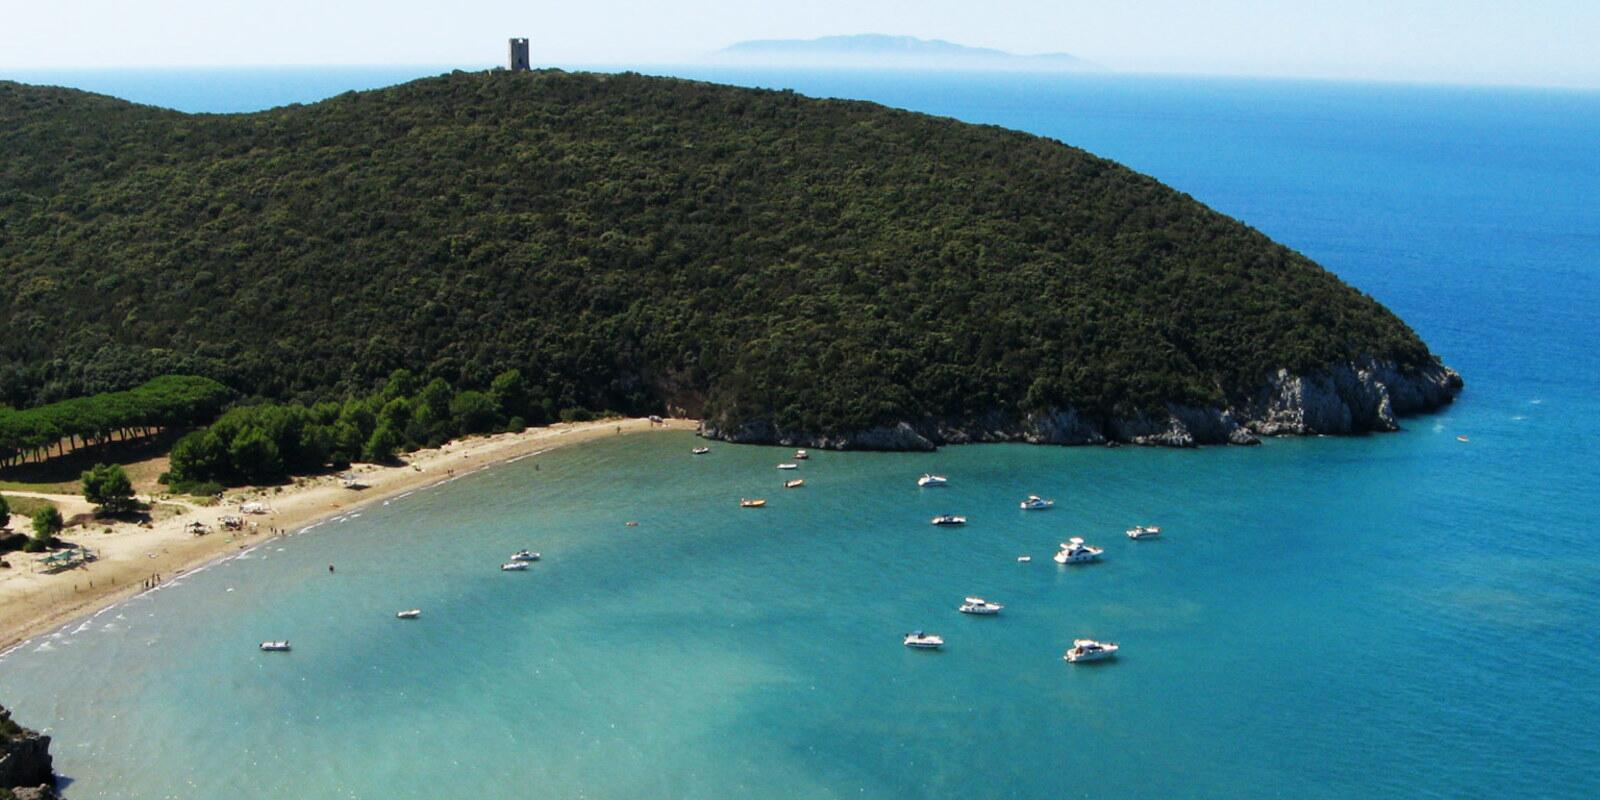 Tuscan Archipelago South Route